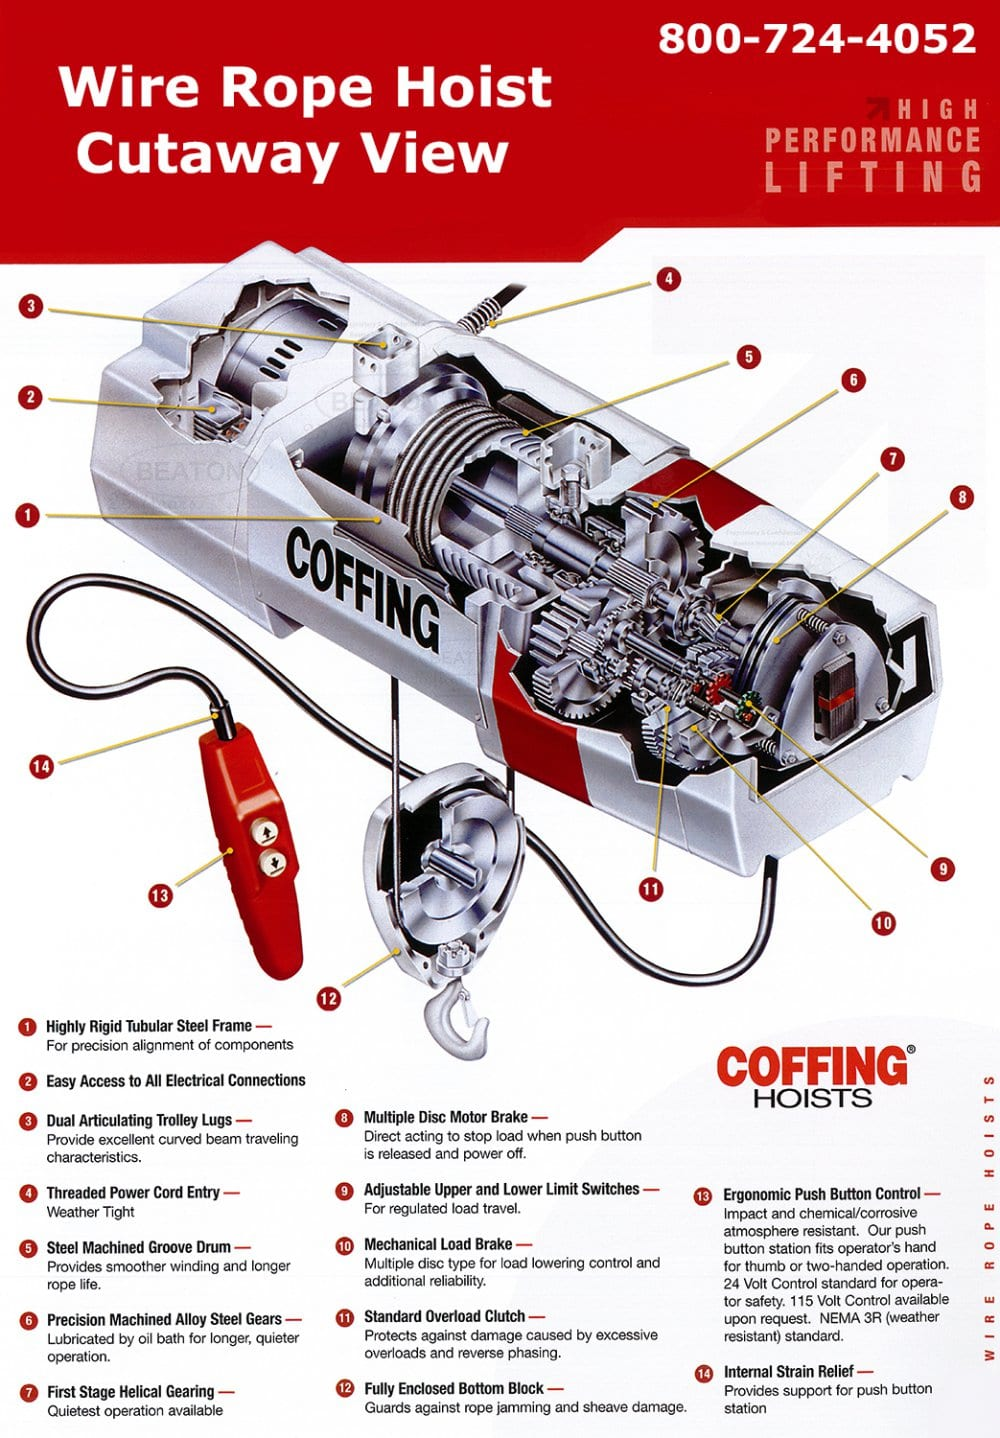 Coffing Wire Rope Hoist Cutaway View